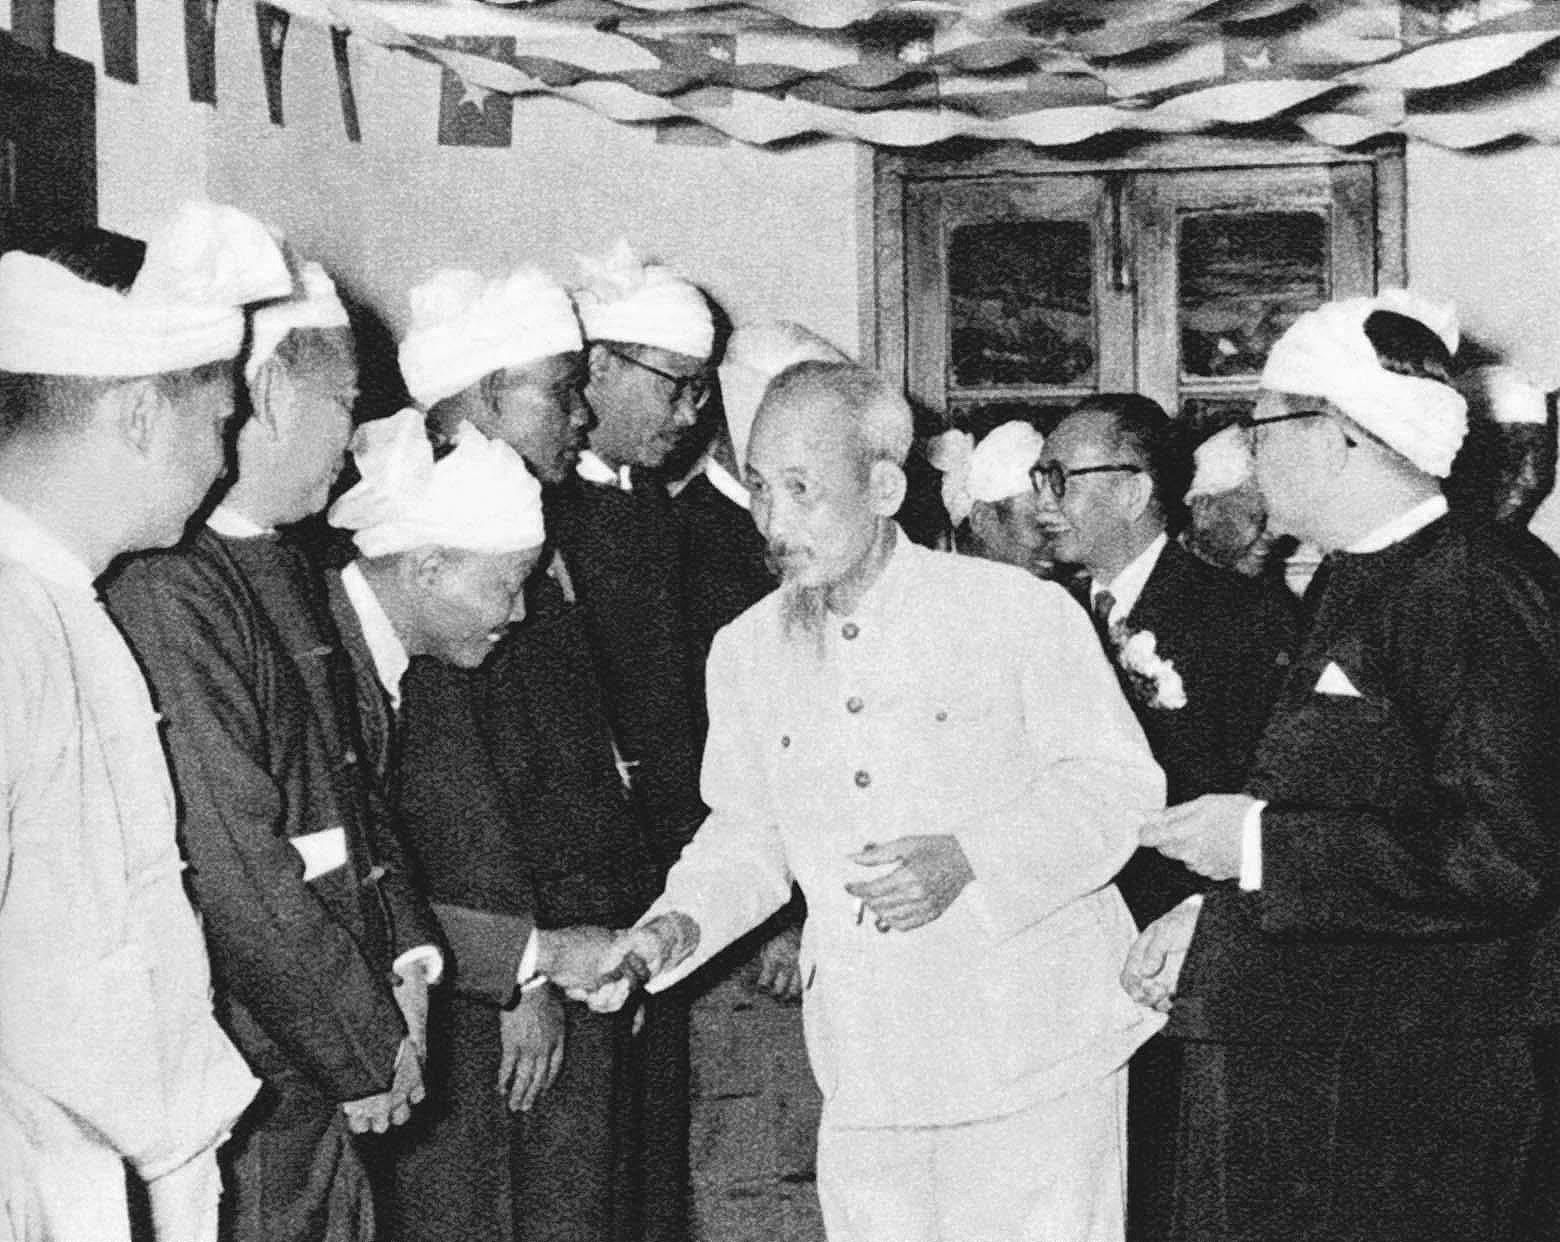 President Ho Chi Minh's thoughts on int'l solidarity hinh anh 10